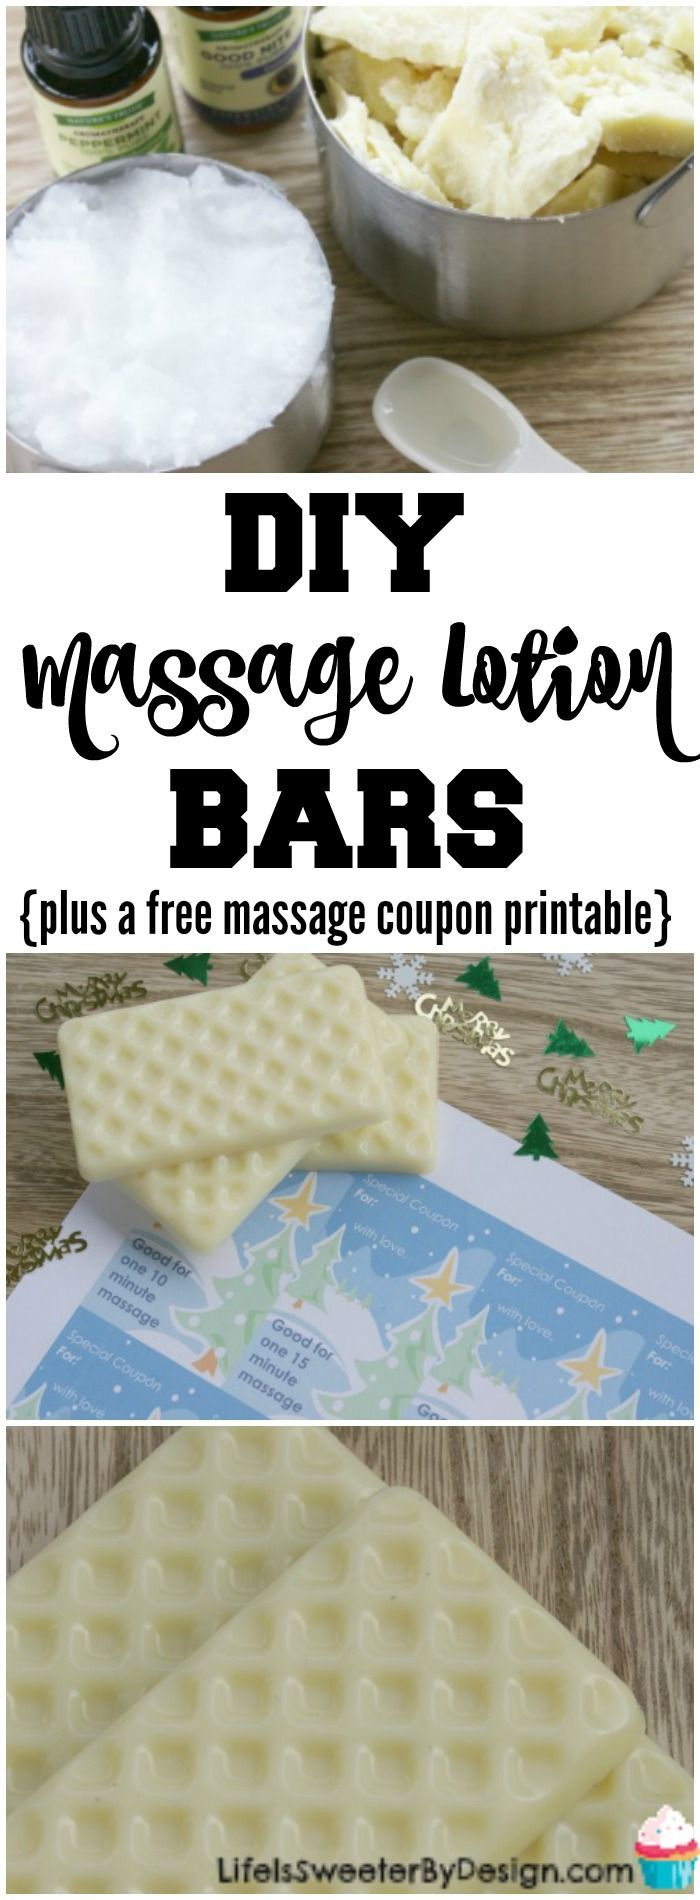 DIY Homemade Massage Lotion Bars are easy to make and great for Christmas gifts! Be sure to print off free massage coupons to give with your DIY massage bars!